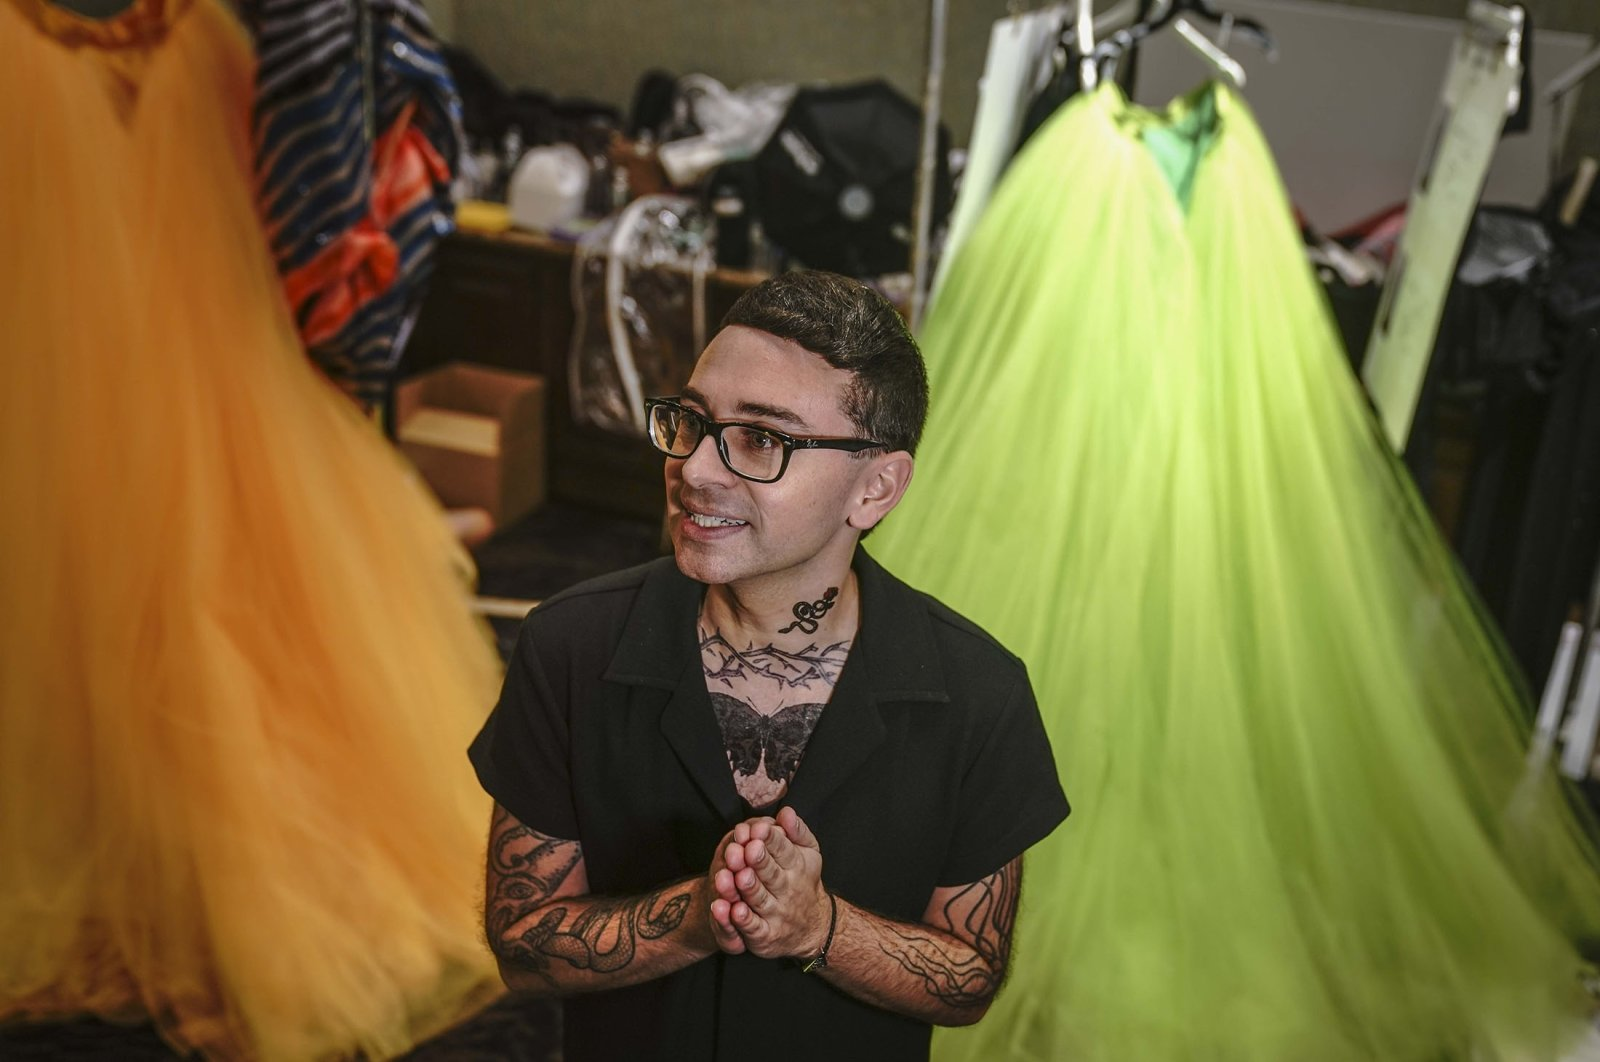 Christian Siriano speaks during a backstage interview before unveiling his latest fashion during New York's Fashion Week, New York, U.S., Sept. 7, 2021. (AP Photo)